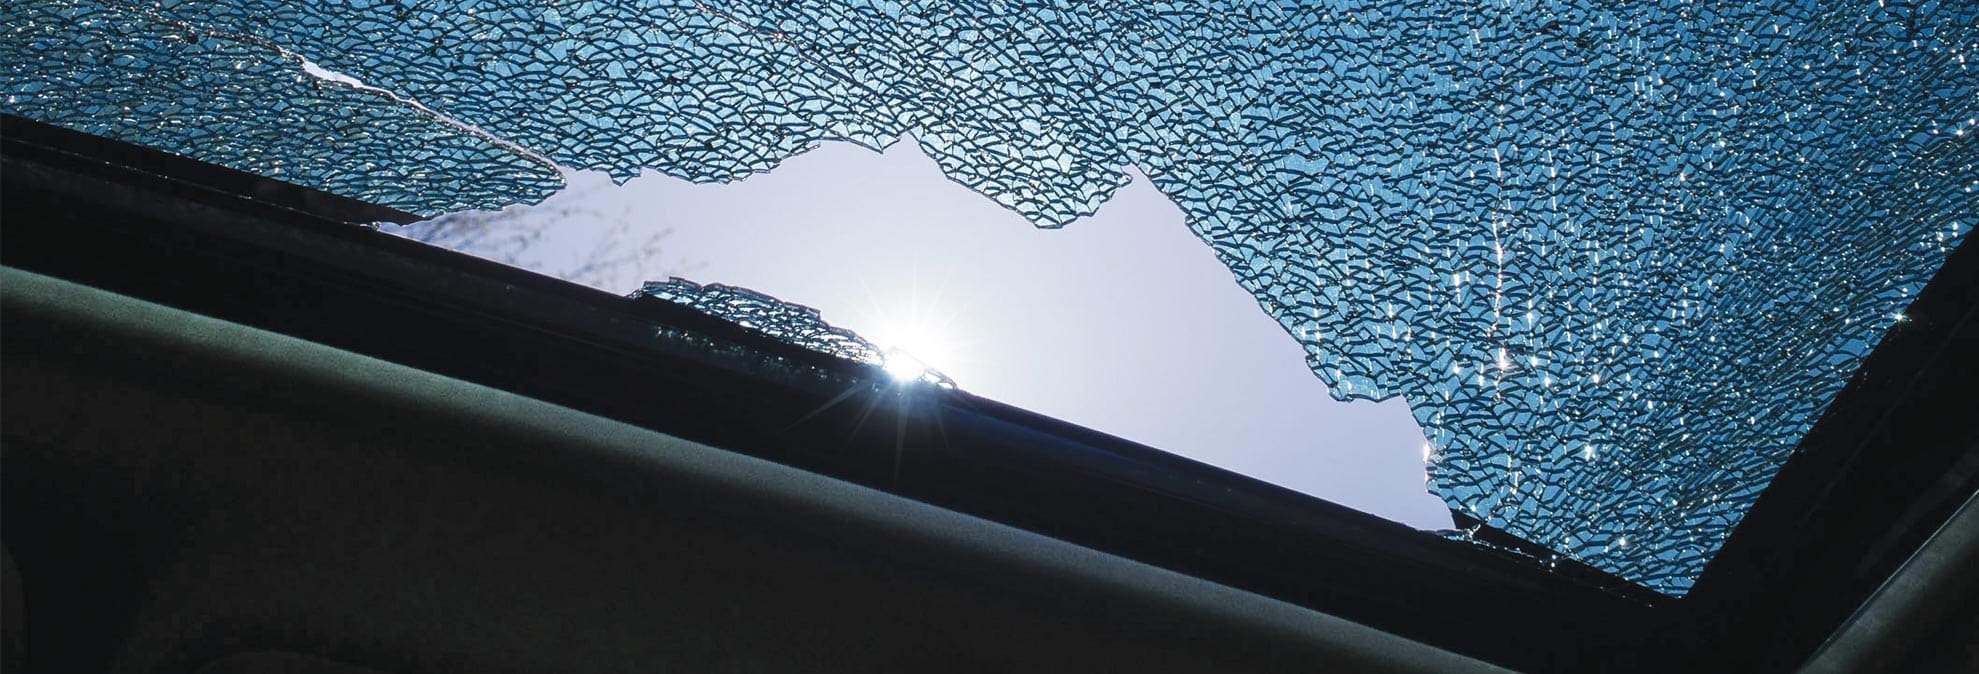 Car Repair Insurance >> Exploding Sunroofs: Danger Overhead - Consumer Reports